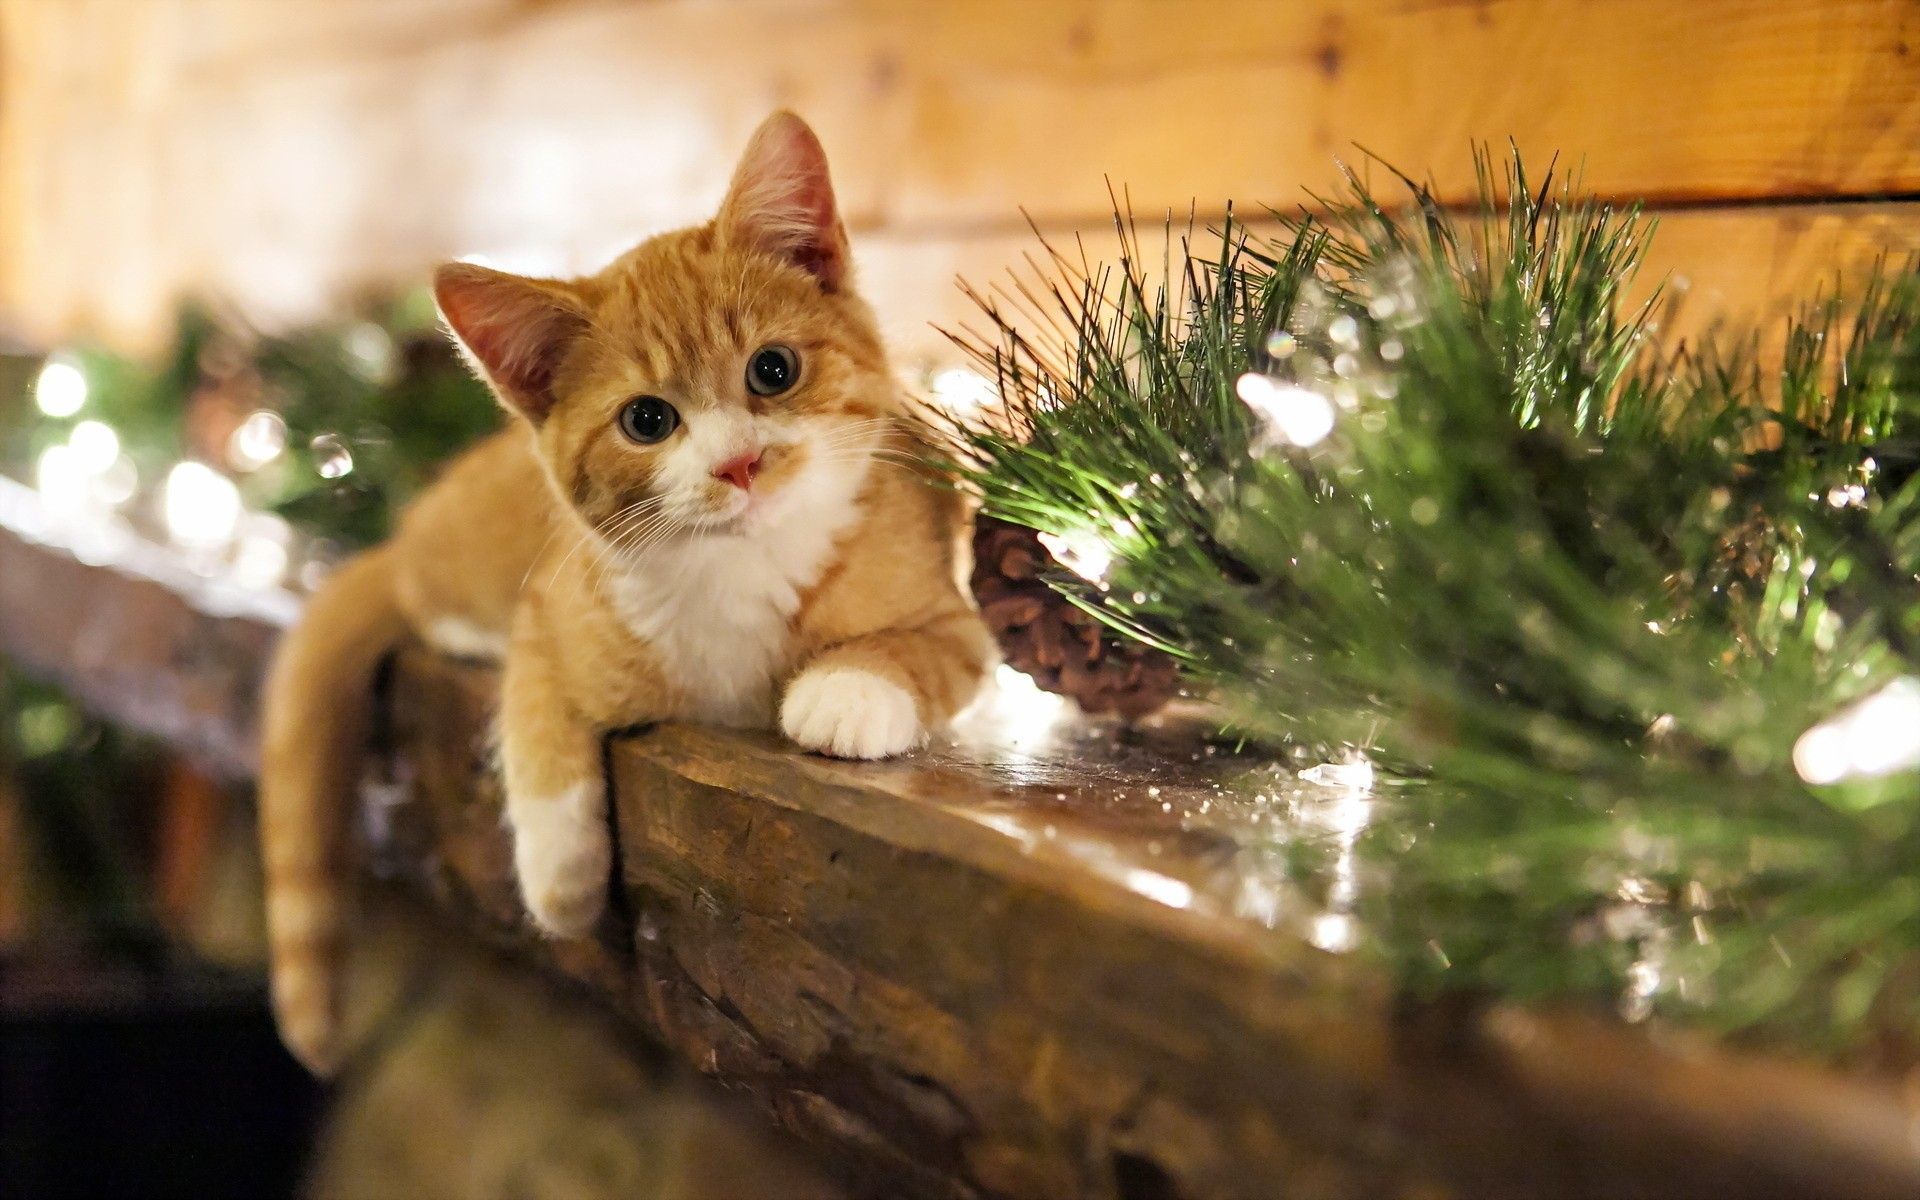 Christmas Kitten wallpapers | Christmas Kitten stock photos